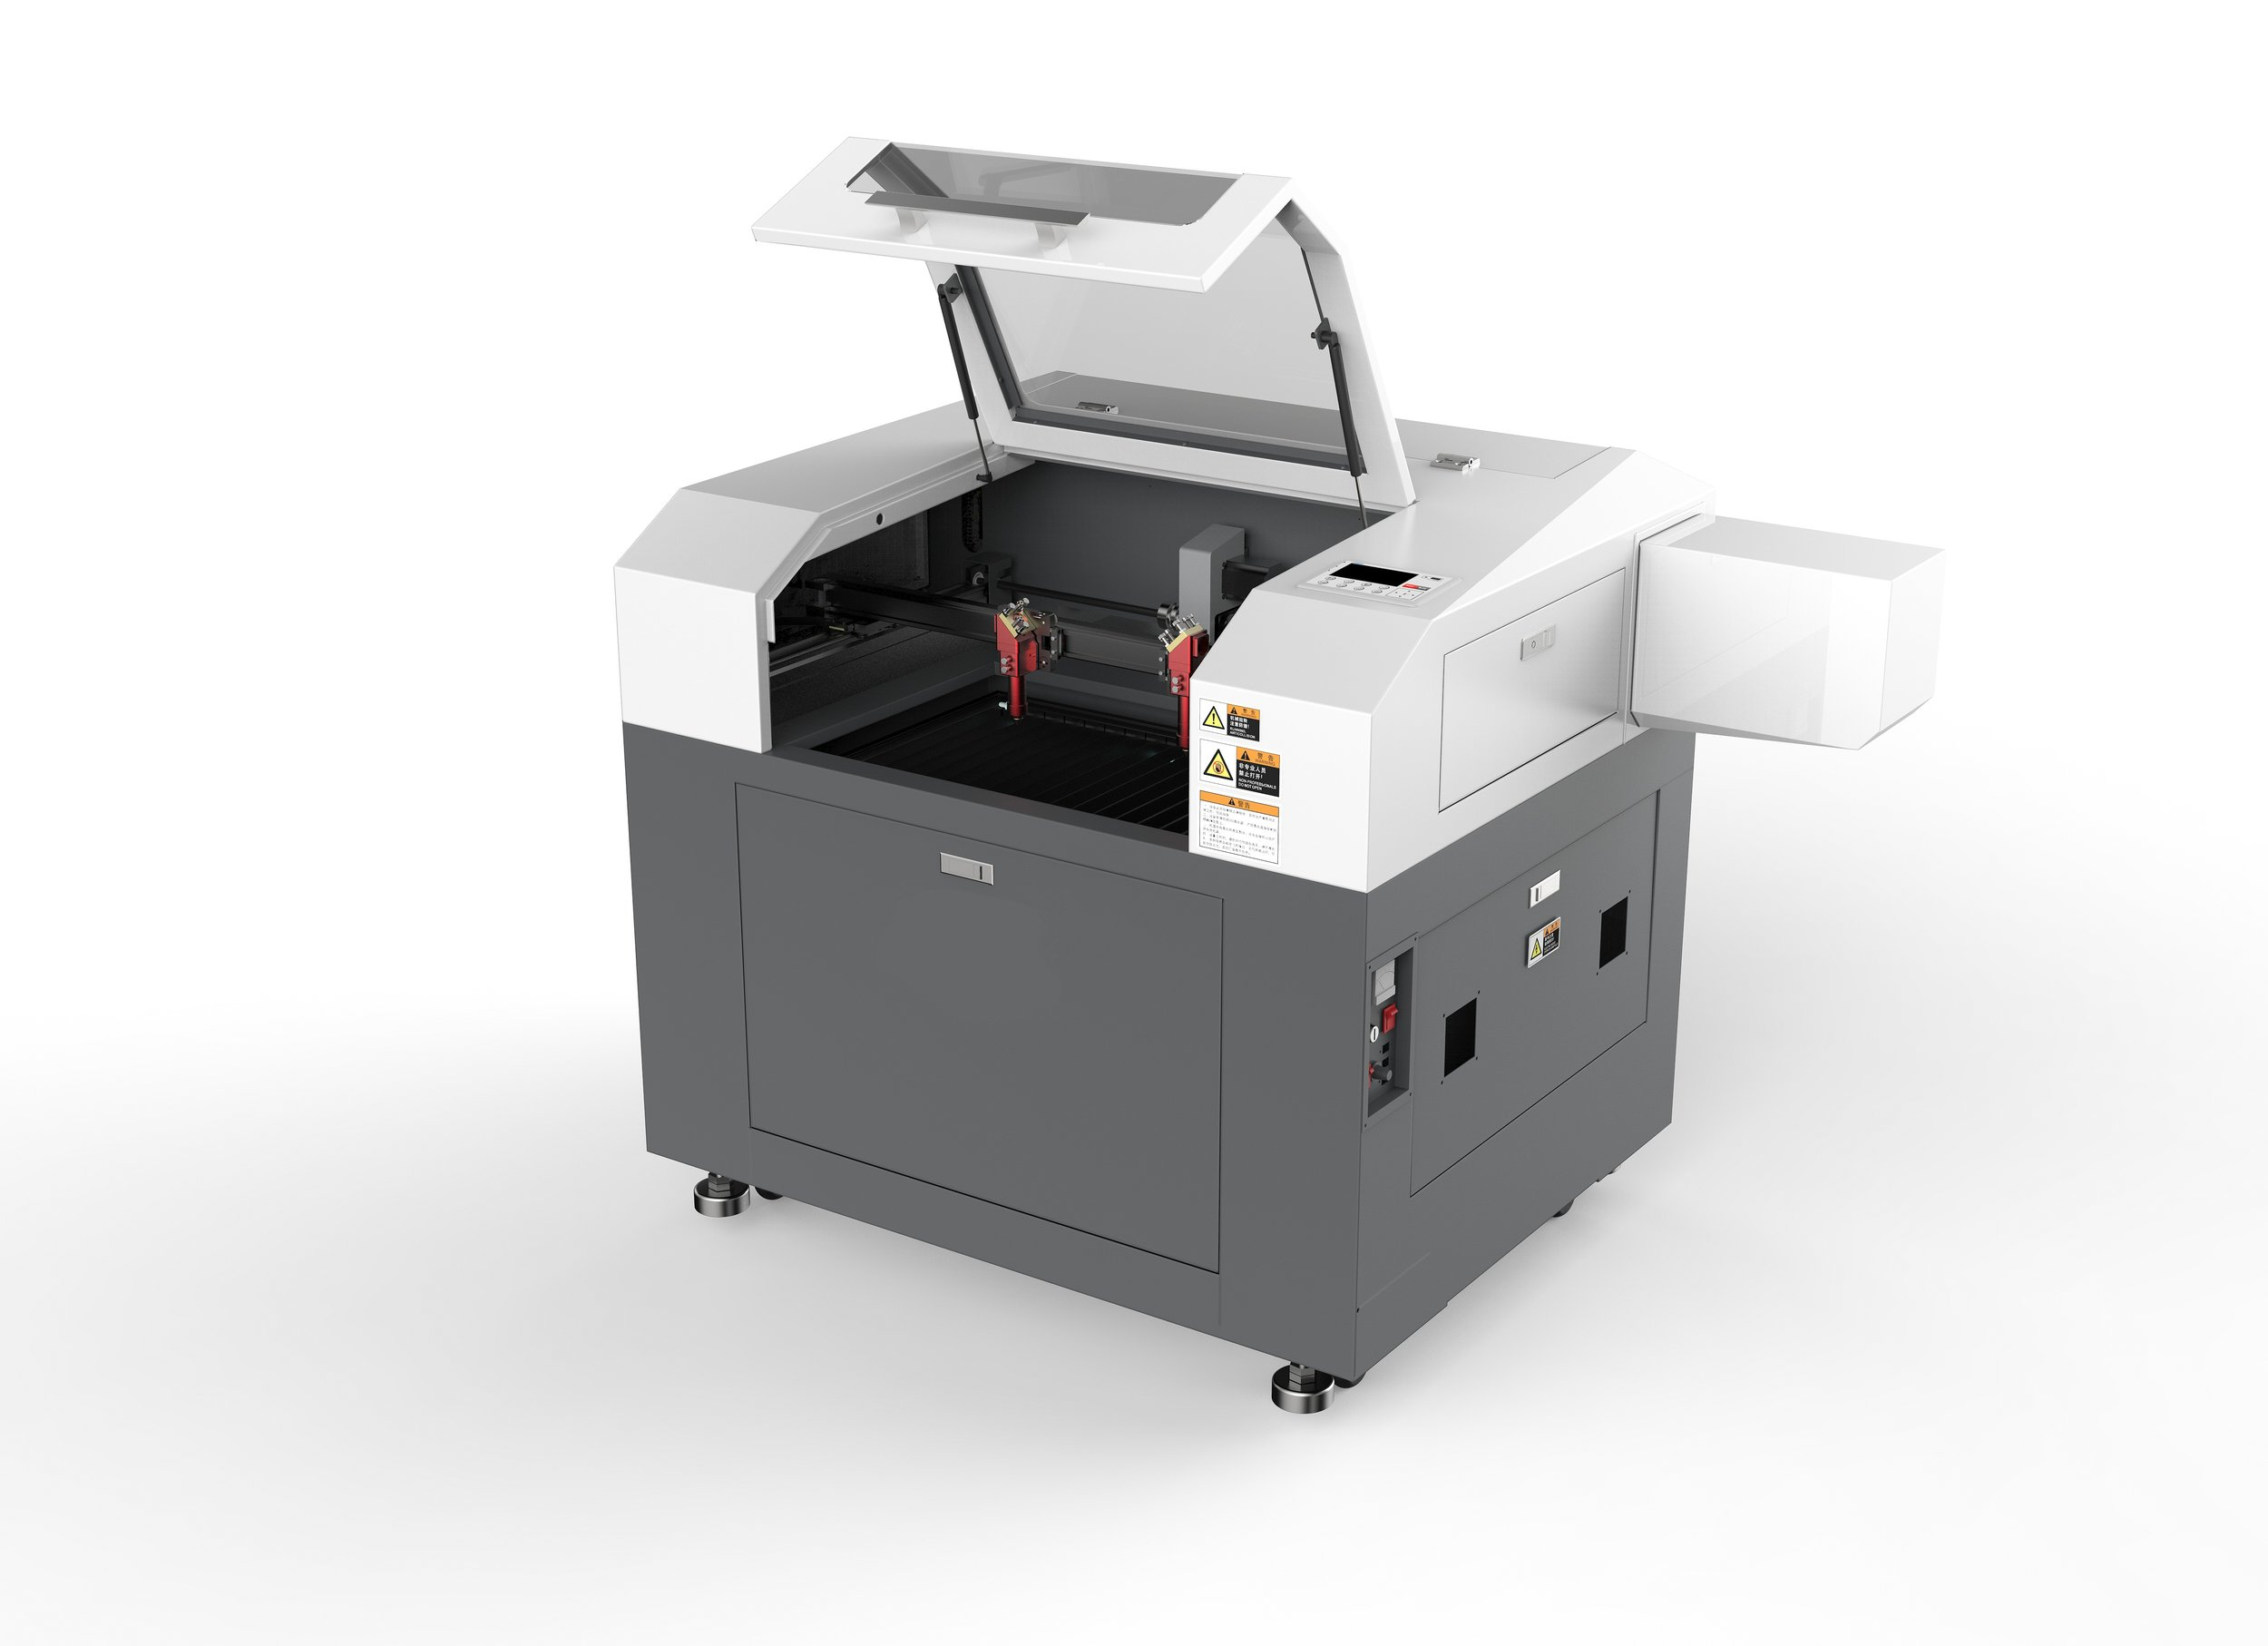 SP-6004 - The SP-6004 is the ideal choice for small scale prototyping and engraving. A powerful machine with a small footprint.